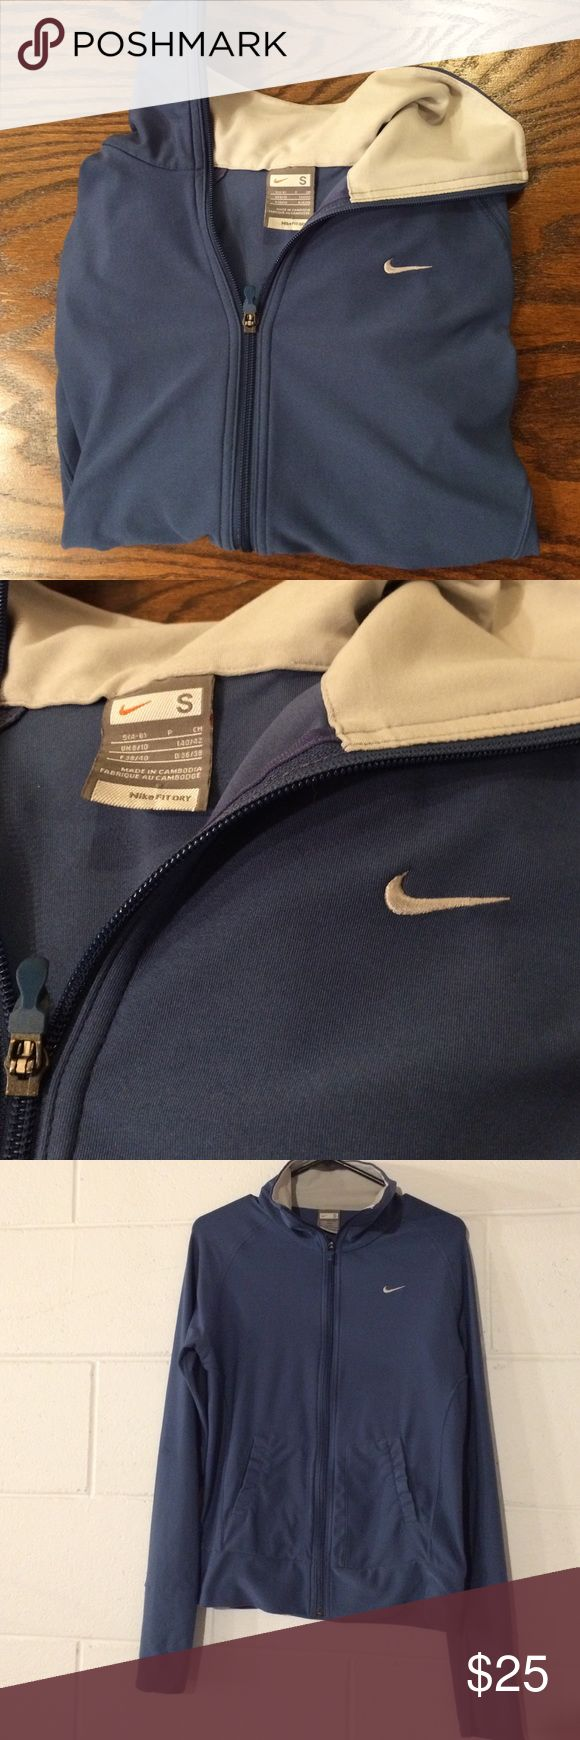 Women's Nike FIT DRY zip-up jacket. In excellent, like new condition. I LOVE this blue color. White Nike logo on chest. Complete zip up in front. Has the same stretchy Nike FIT DRY fabric. 2 pockets in front for hands. 92% polyester, 8% spandex. Fits great and looks super cute!! Nike Jackets & Coats